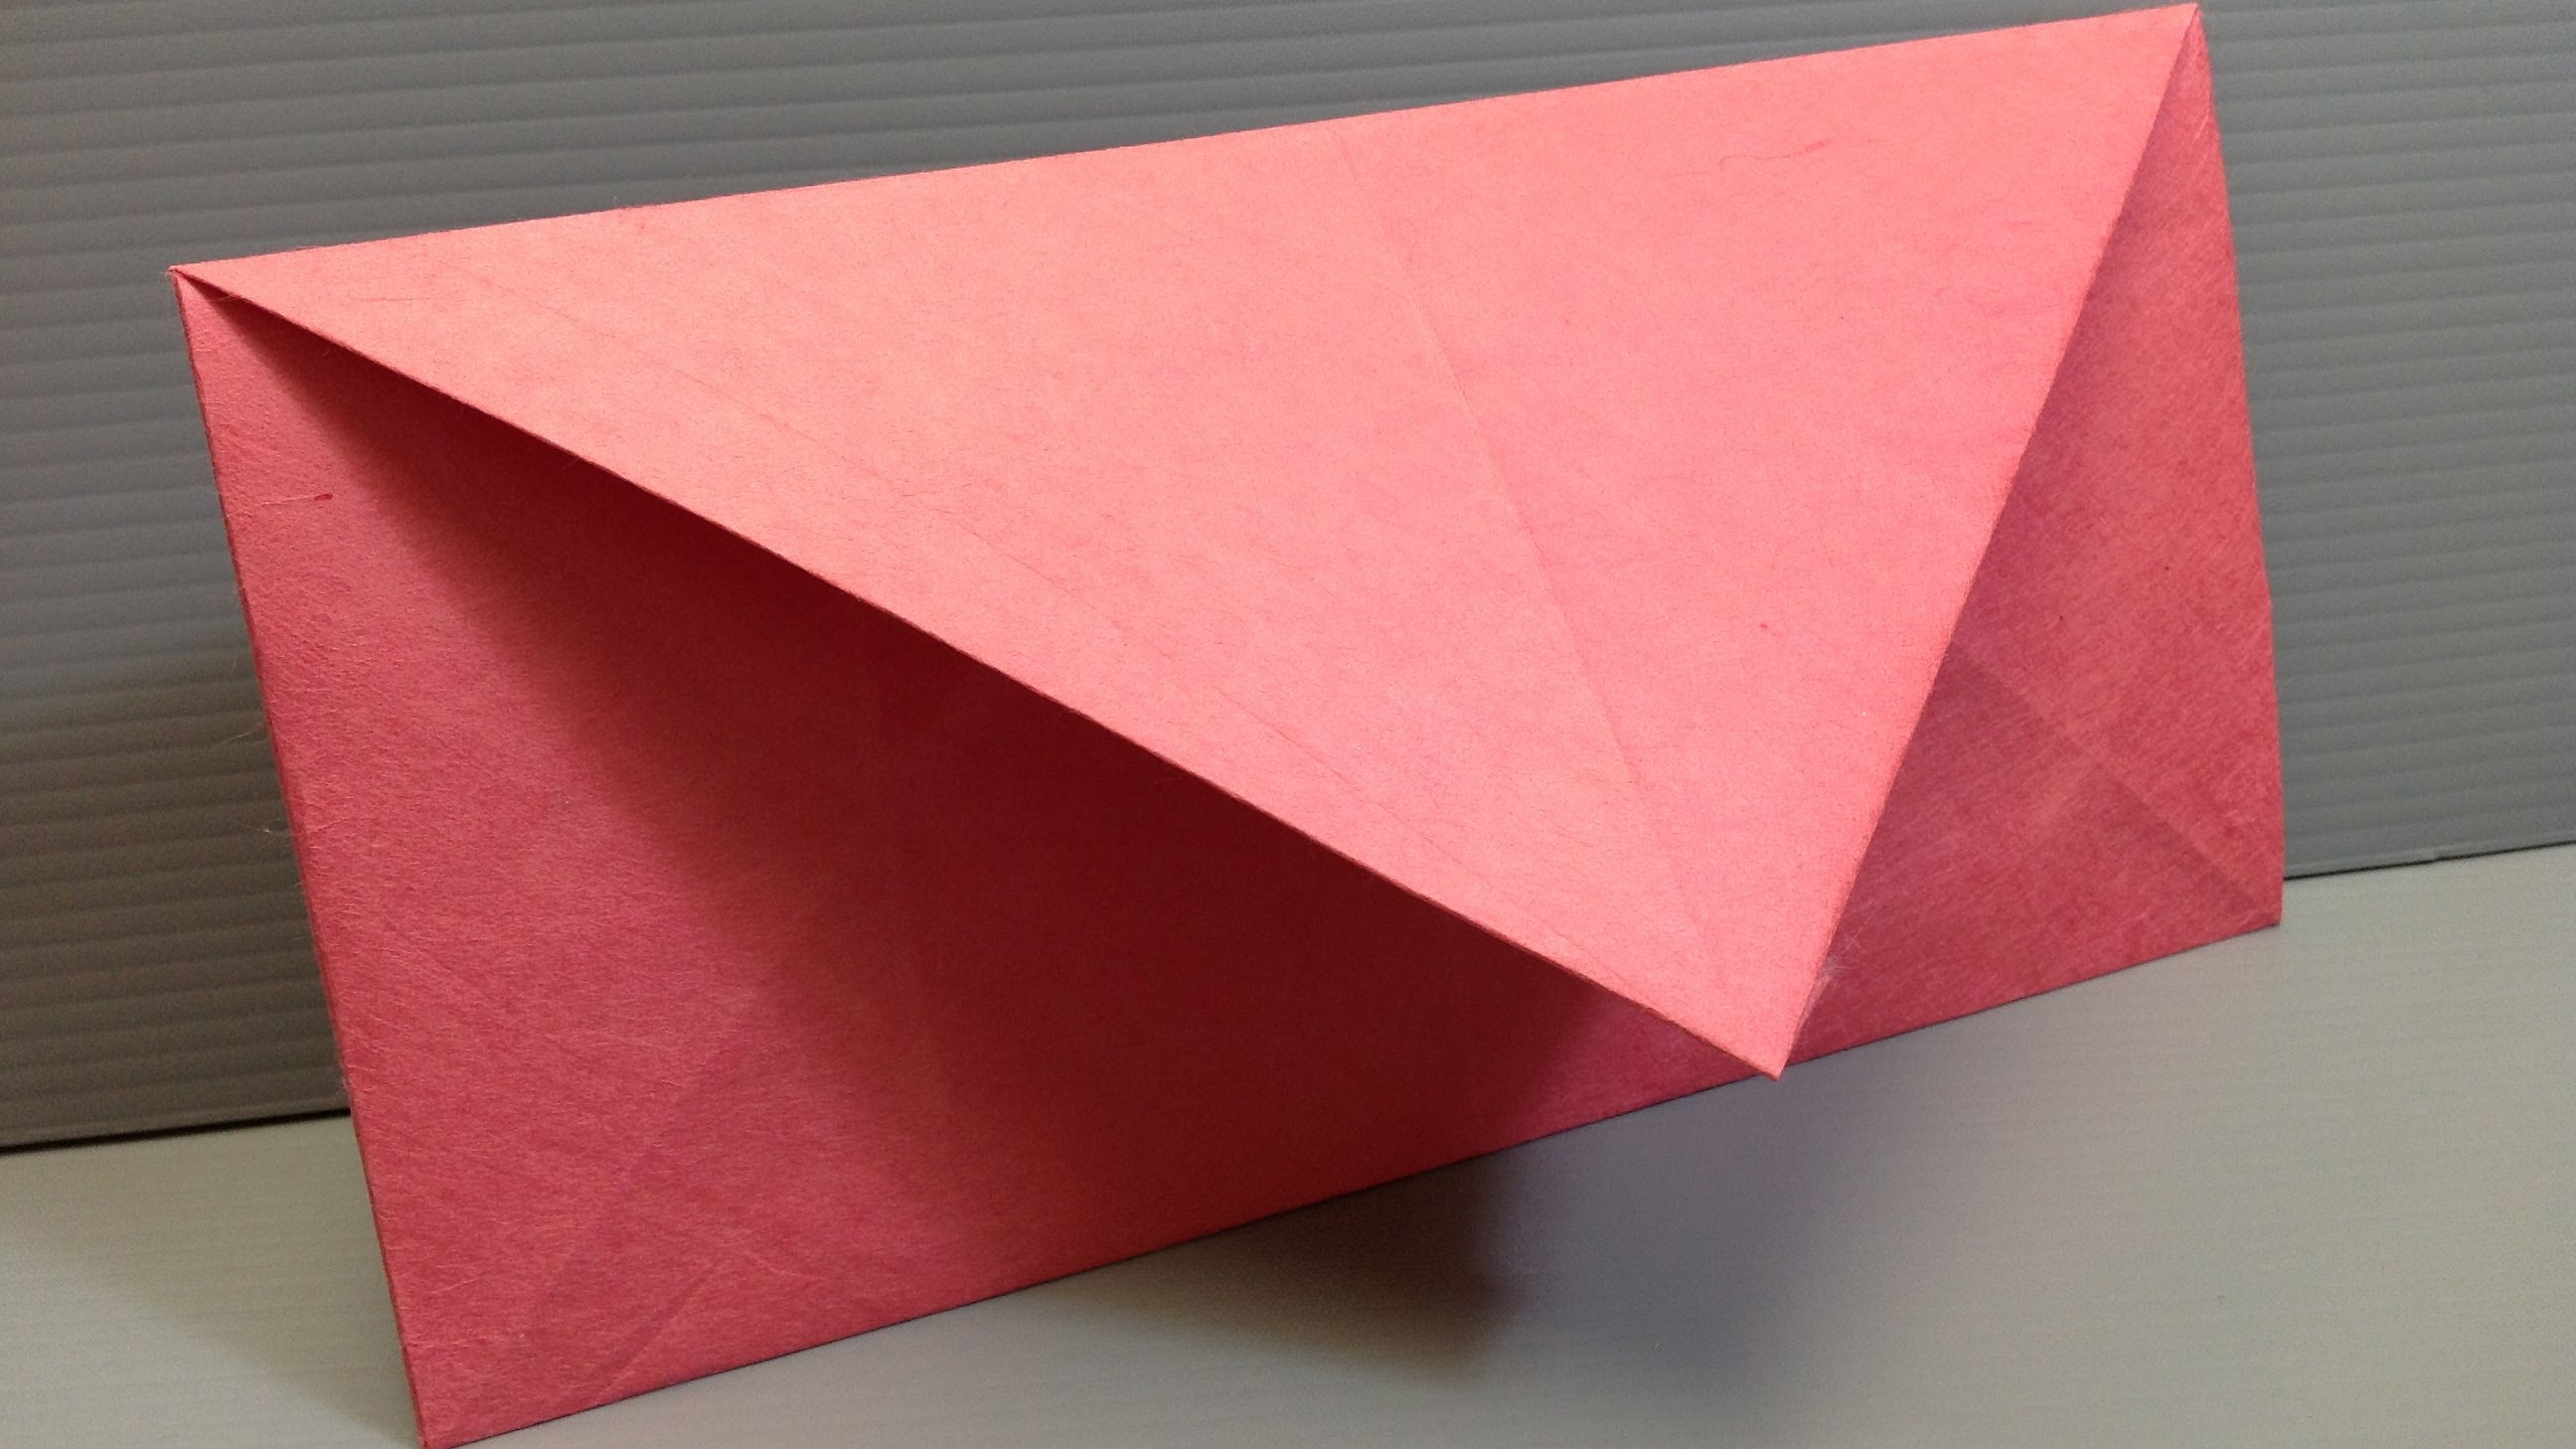 Envelope Origami Letters Make Your Own Origami Envelopes Any Size Youtube